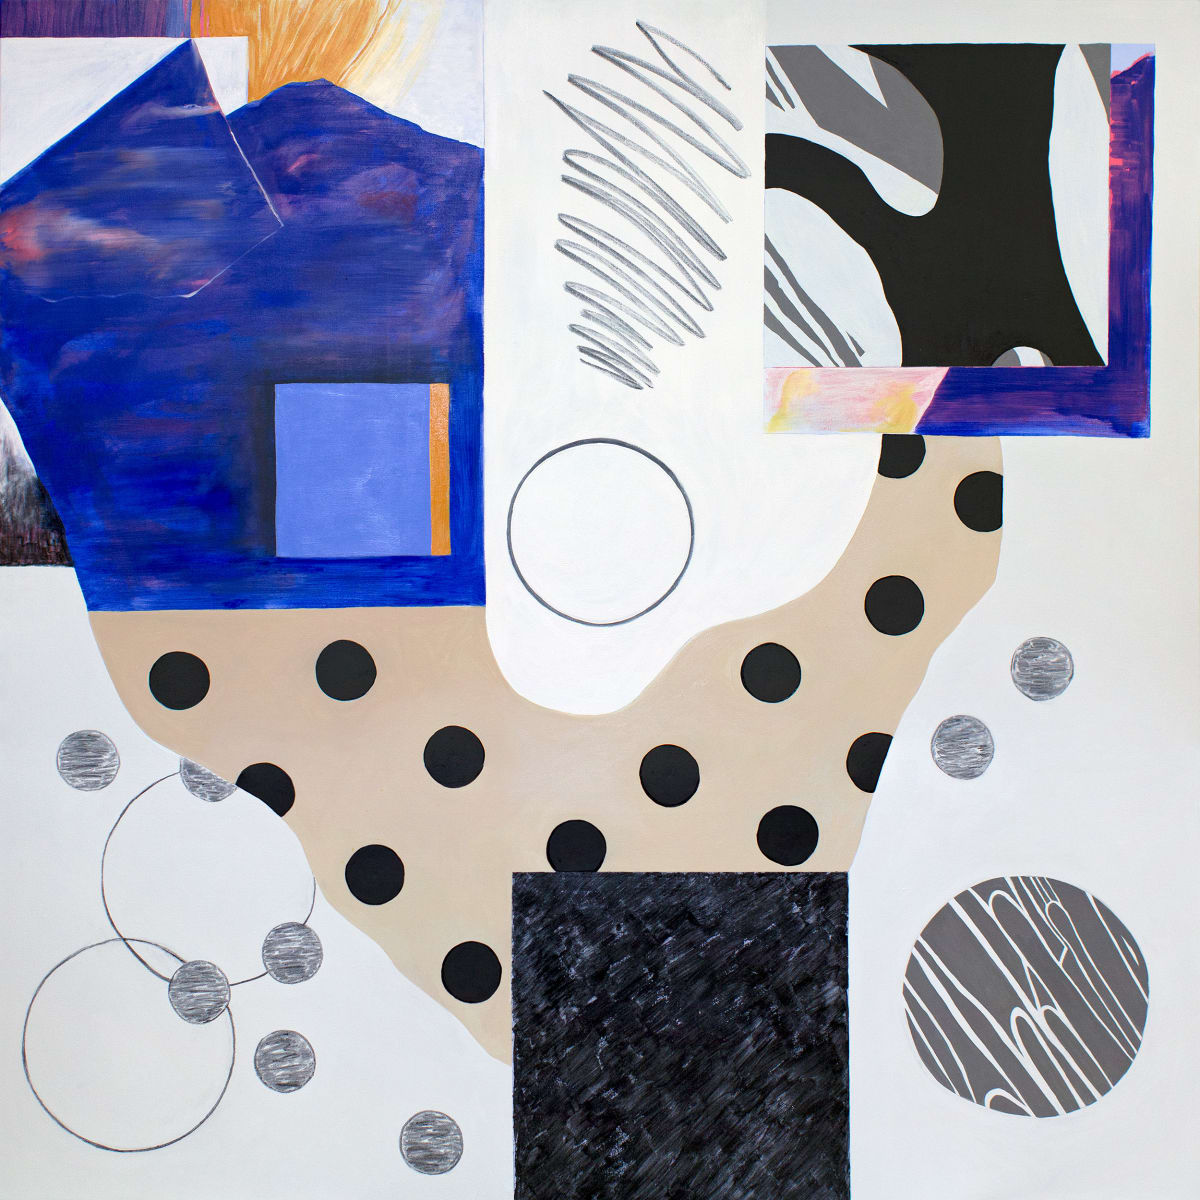 Abstract Interior (blue) by Pamela Staker